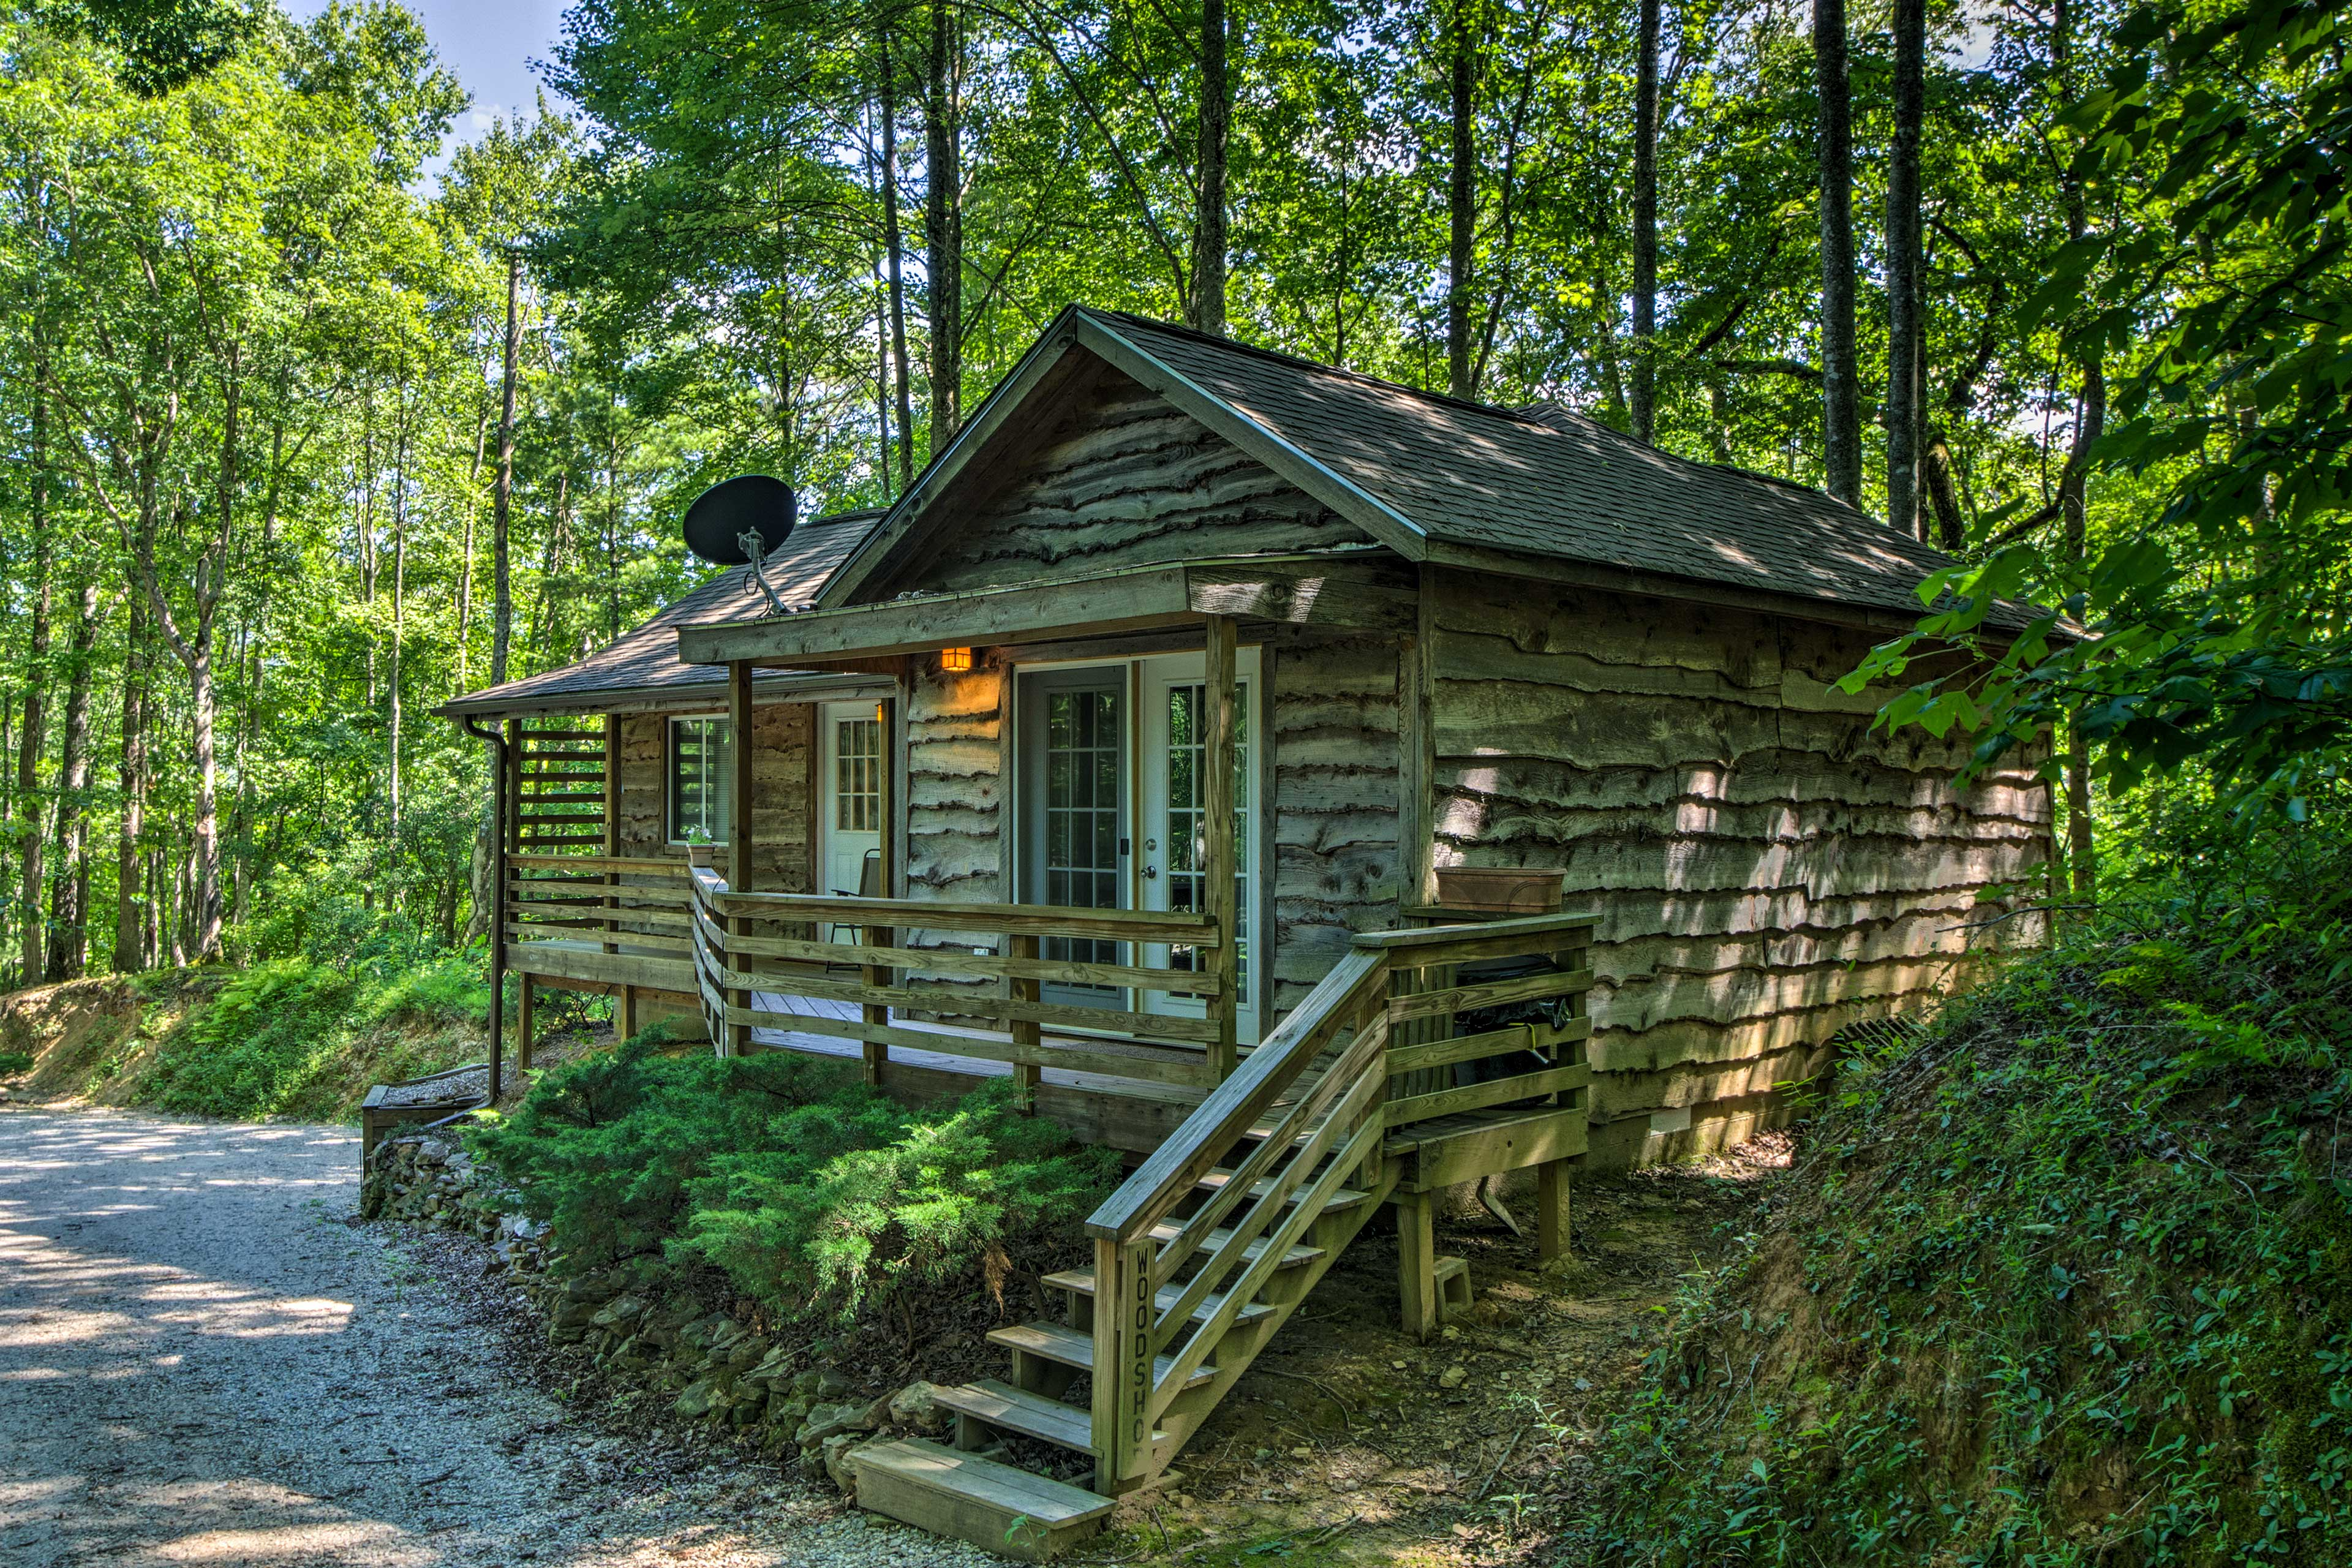 Stay at 'The Woodshop,' a 1-bed, 1.5-bath vacation rental cabin.